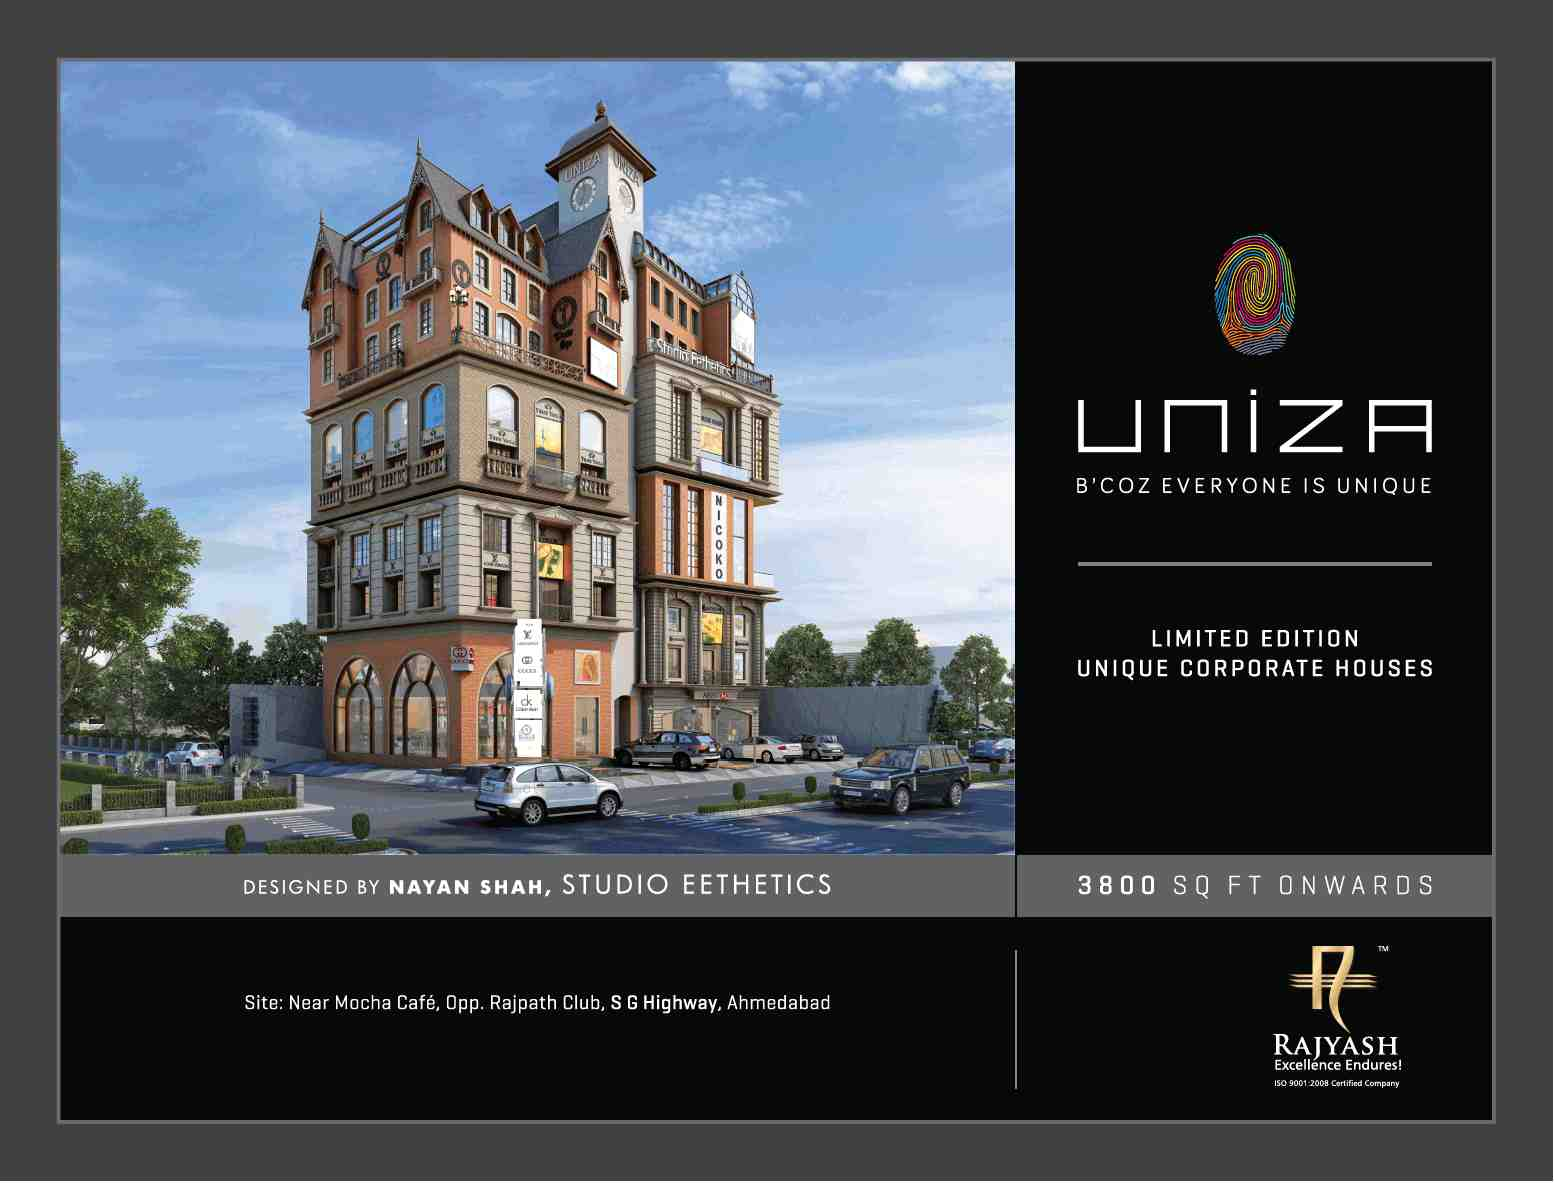 book limited edition unique corporate houses at rajyash uniza in